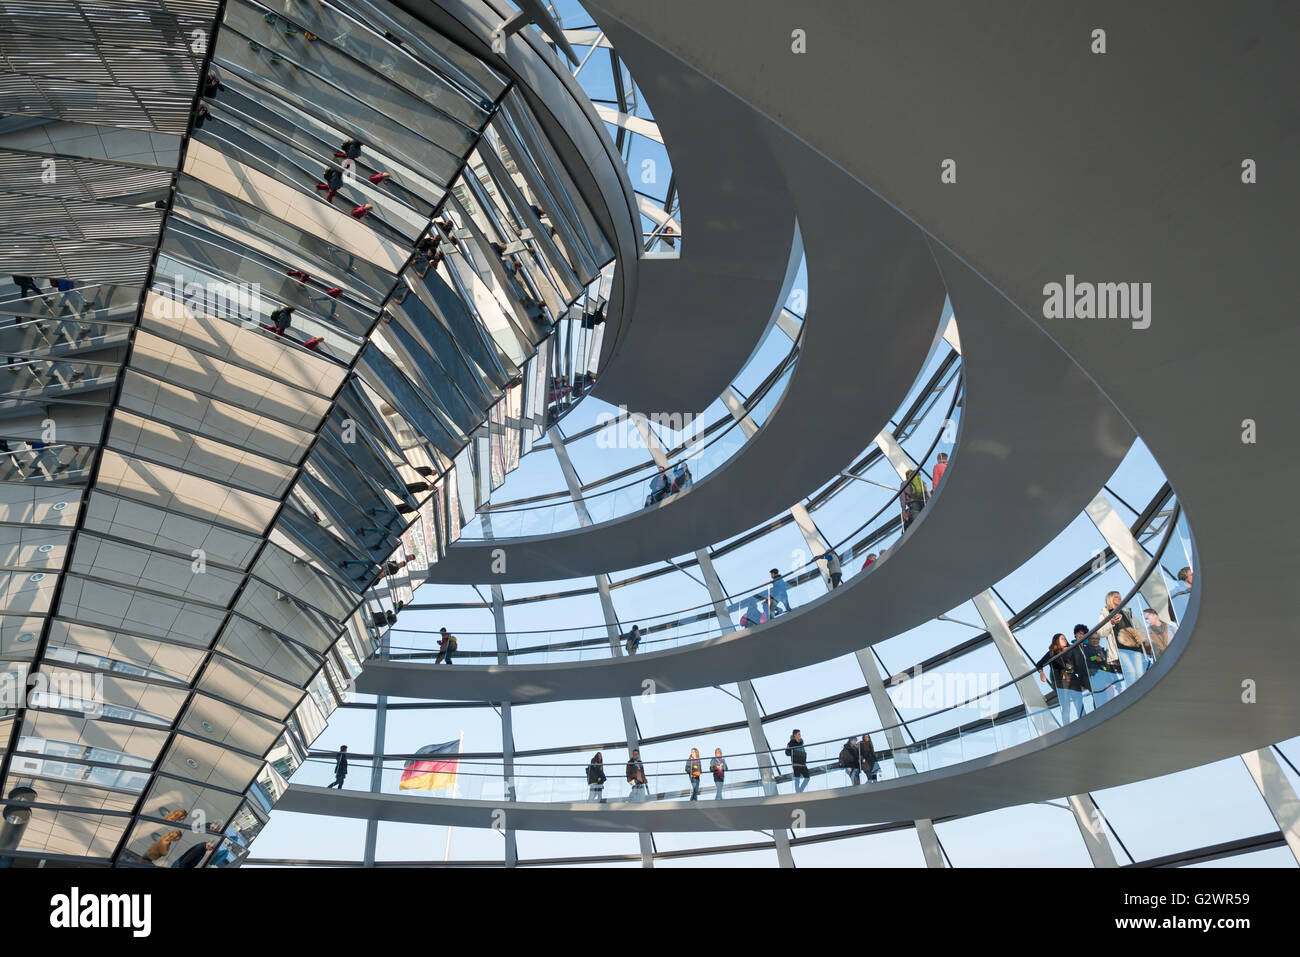 27.10.2015, Berlin, Berlin, Germany - The glass dome on the Reichstag building, the seat of the German Bundestag. Visitors to the spiral leading upward rise, other visitors are reflected in the Mittelsaeule the Reichstag dome. The architect of mordernen dome is Sir Norman Foster. 0JL151027D077CAROEX.JPG - NOT for SALE in G E R M A N Y, A U S T R I A, S W I T Z E R L A N D [MODEL RELEASE: NO, PROPERTY RELEASE: NO, (c) caro photo agency / Lederbogen, http://www.caro-images.com, info@carofoto.pl - Any use of this picture is subject to royalty!] Stock Photo